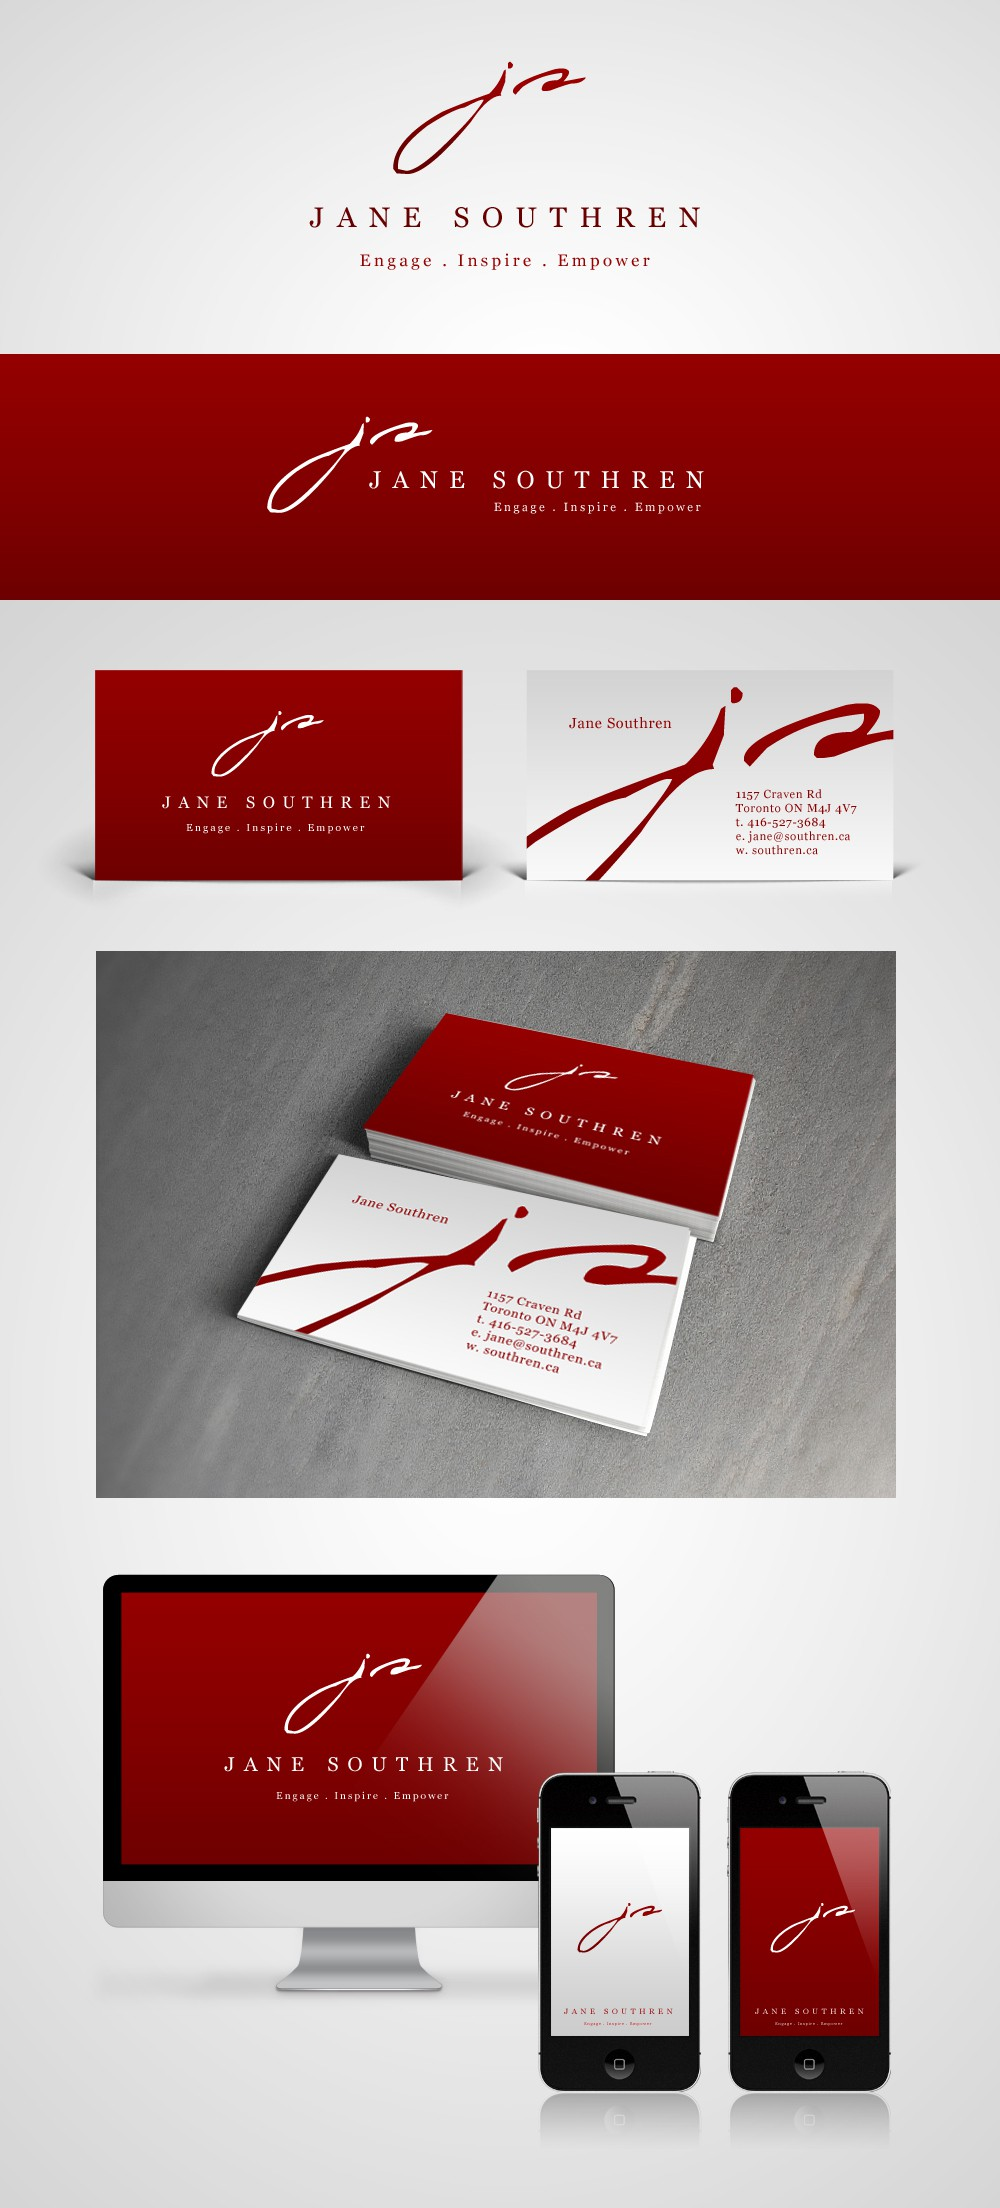 logo and business card for Jane Southren